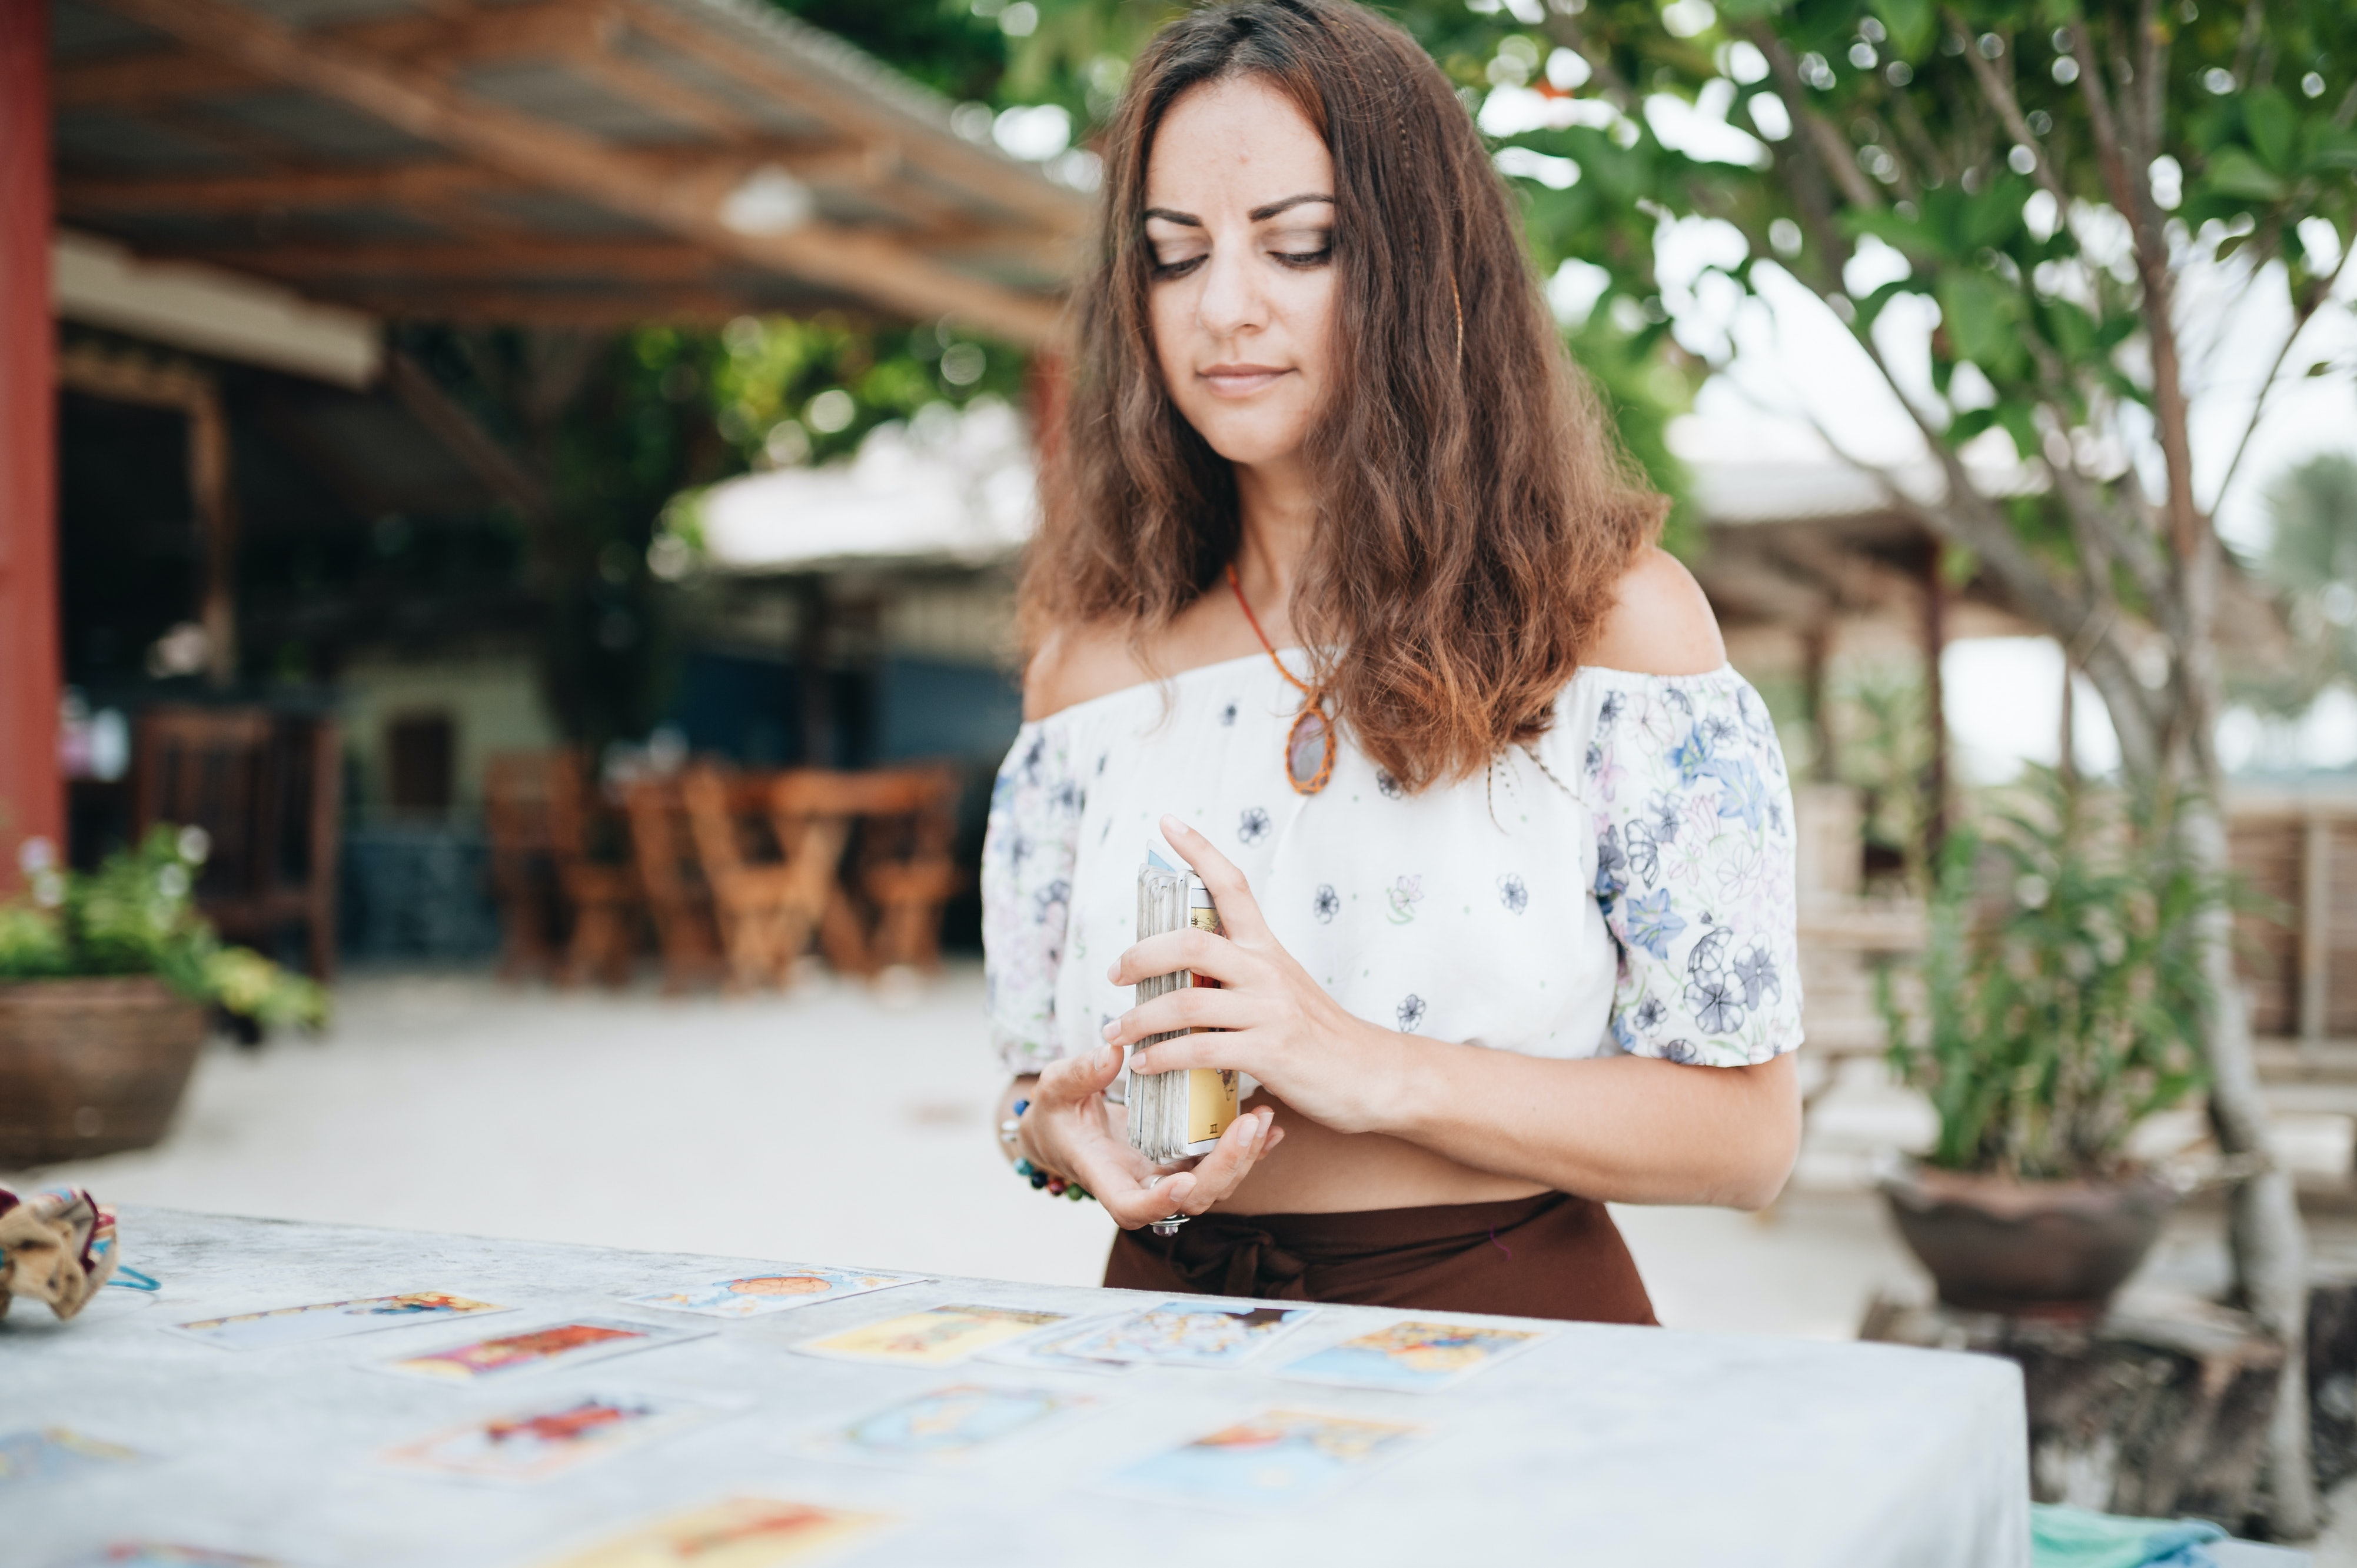 6 Tarot Cards That Mean Bad Things For Your Relationship